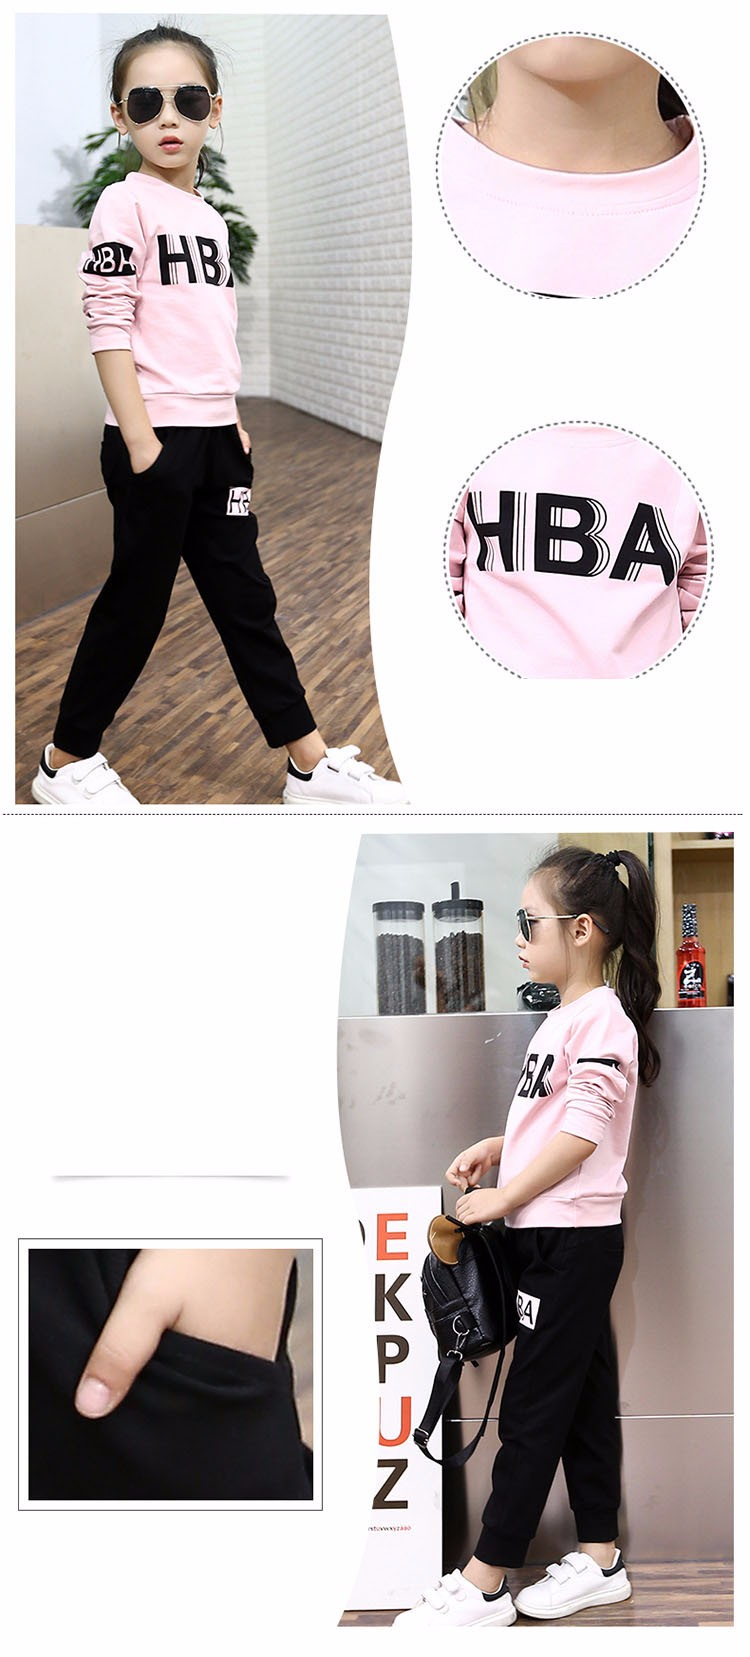 little teenage girls clothes sports suits girls outfits tracksuit autumn spring letters tops t shirts black pants tracksuits girls sets 5 6 7 8 9 10 11 12 13 14 15 16 years old little big teenage girl children sport sets clothing set for girls (1)